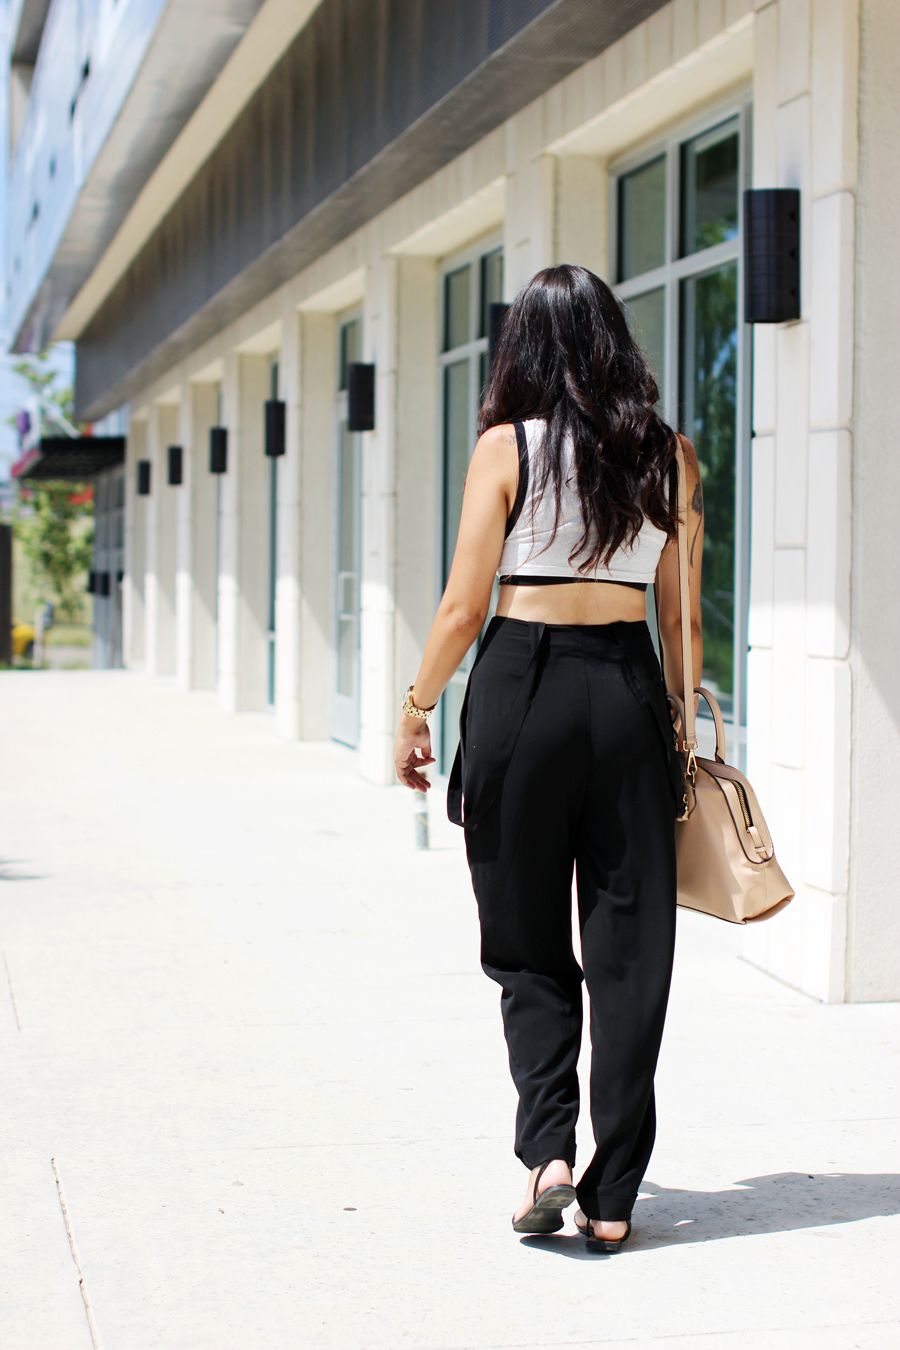 FTT-OVERALL-TROUSER-PANT-CROP-TOP-BLUSH-BAG-7